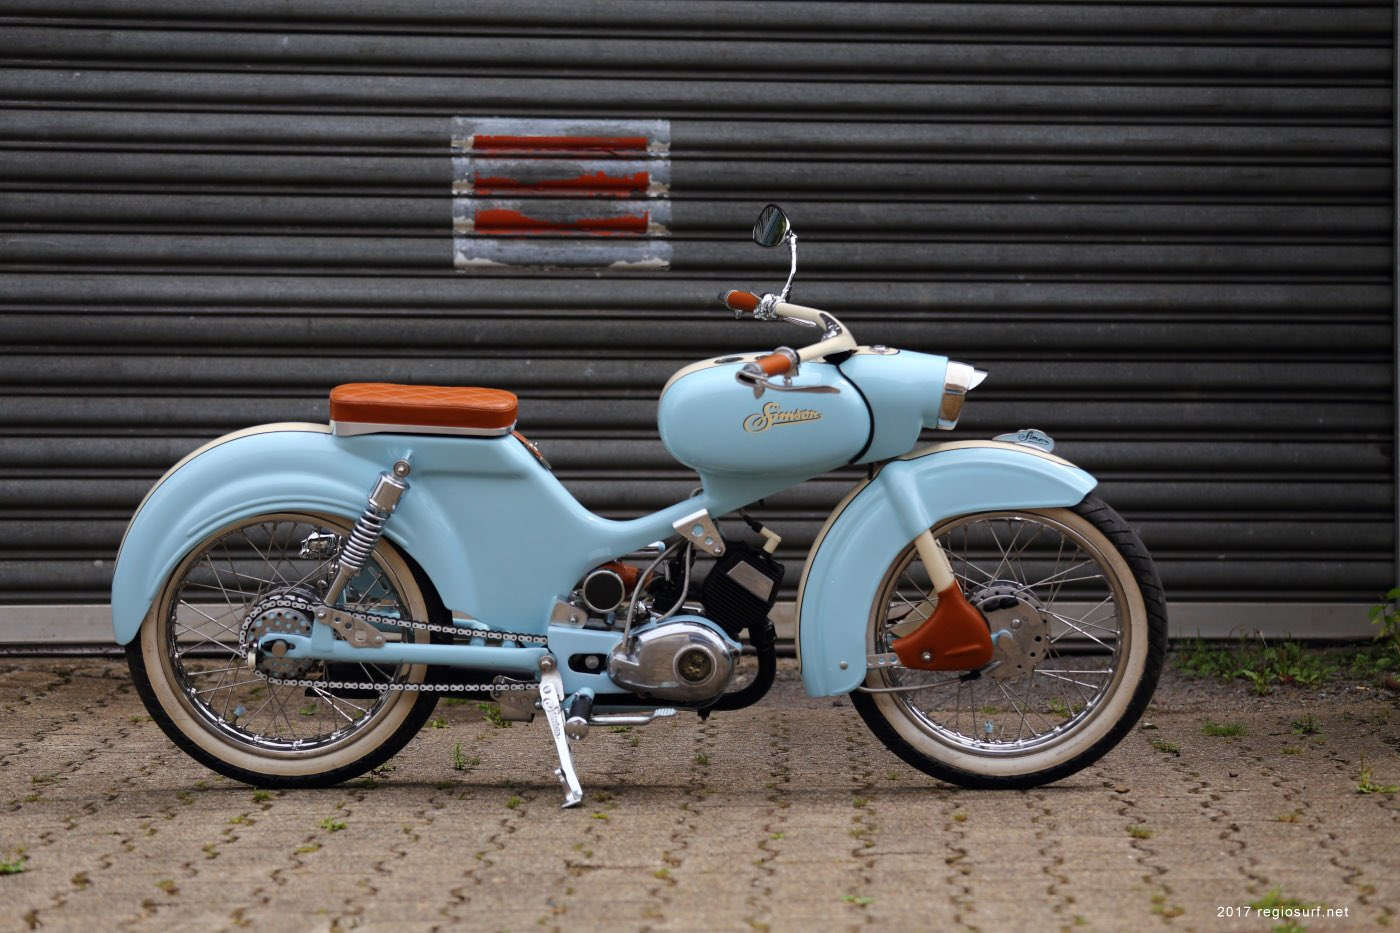 quirky rides on twitter simson spatz r70 east german ddr motorcycle with curvaceous. Black Bedroom Furniture Sets. Home Design Ideas